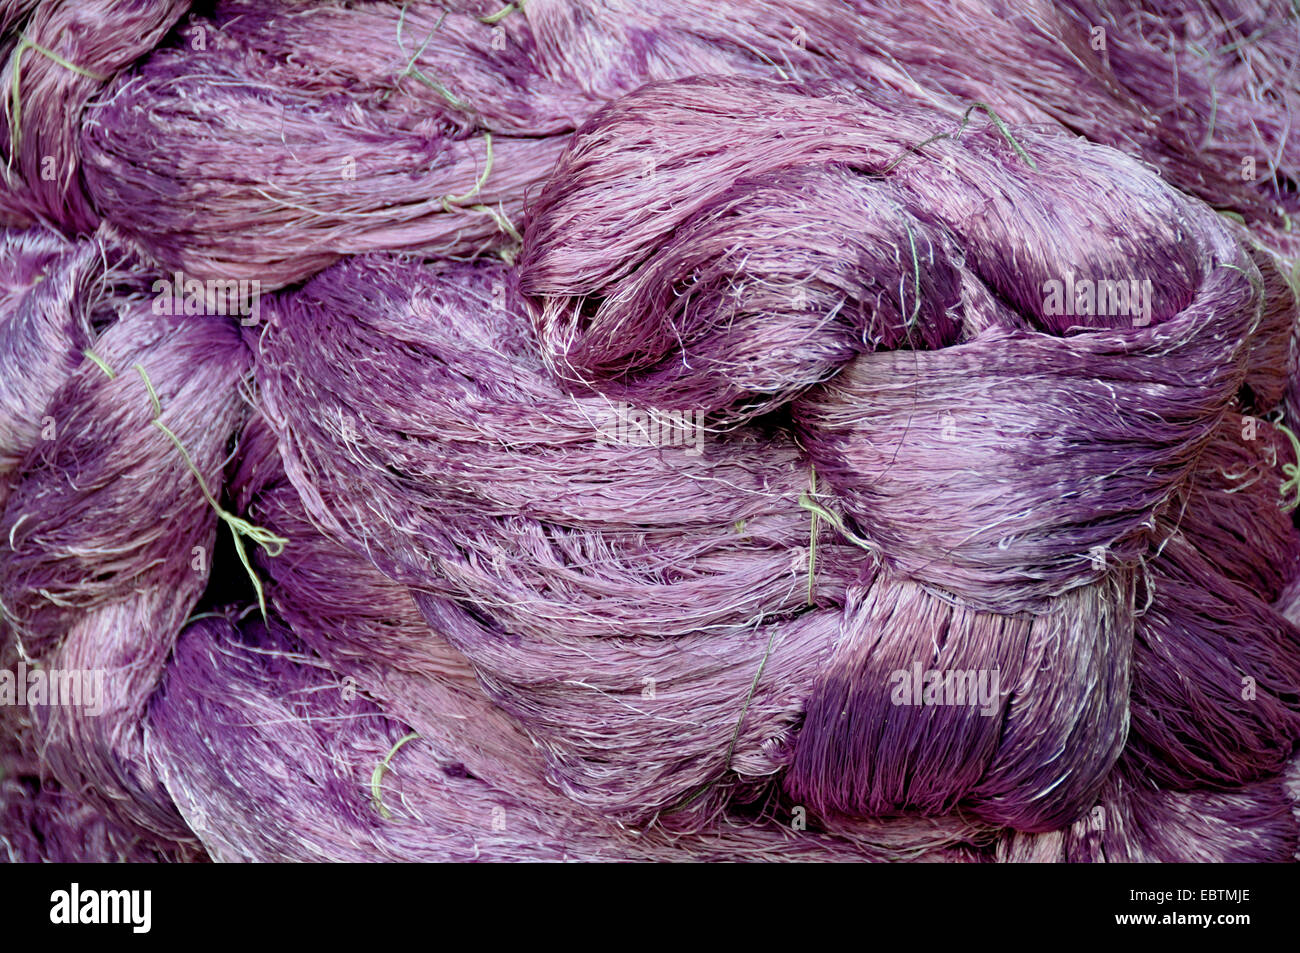 violet dyed wool drying, Morocco, Marrakesh, Fes - Stock Image